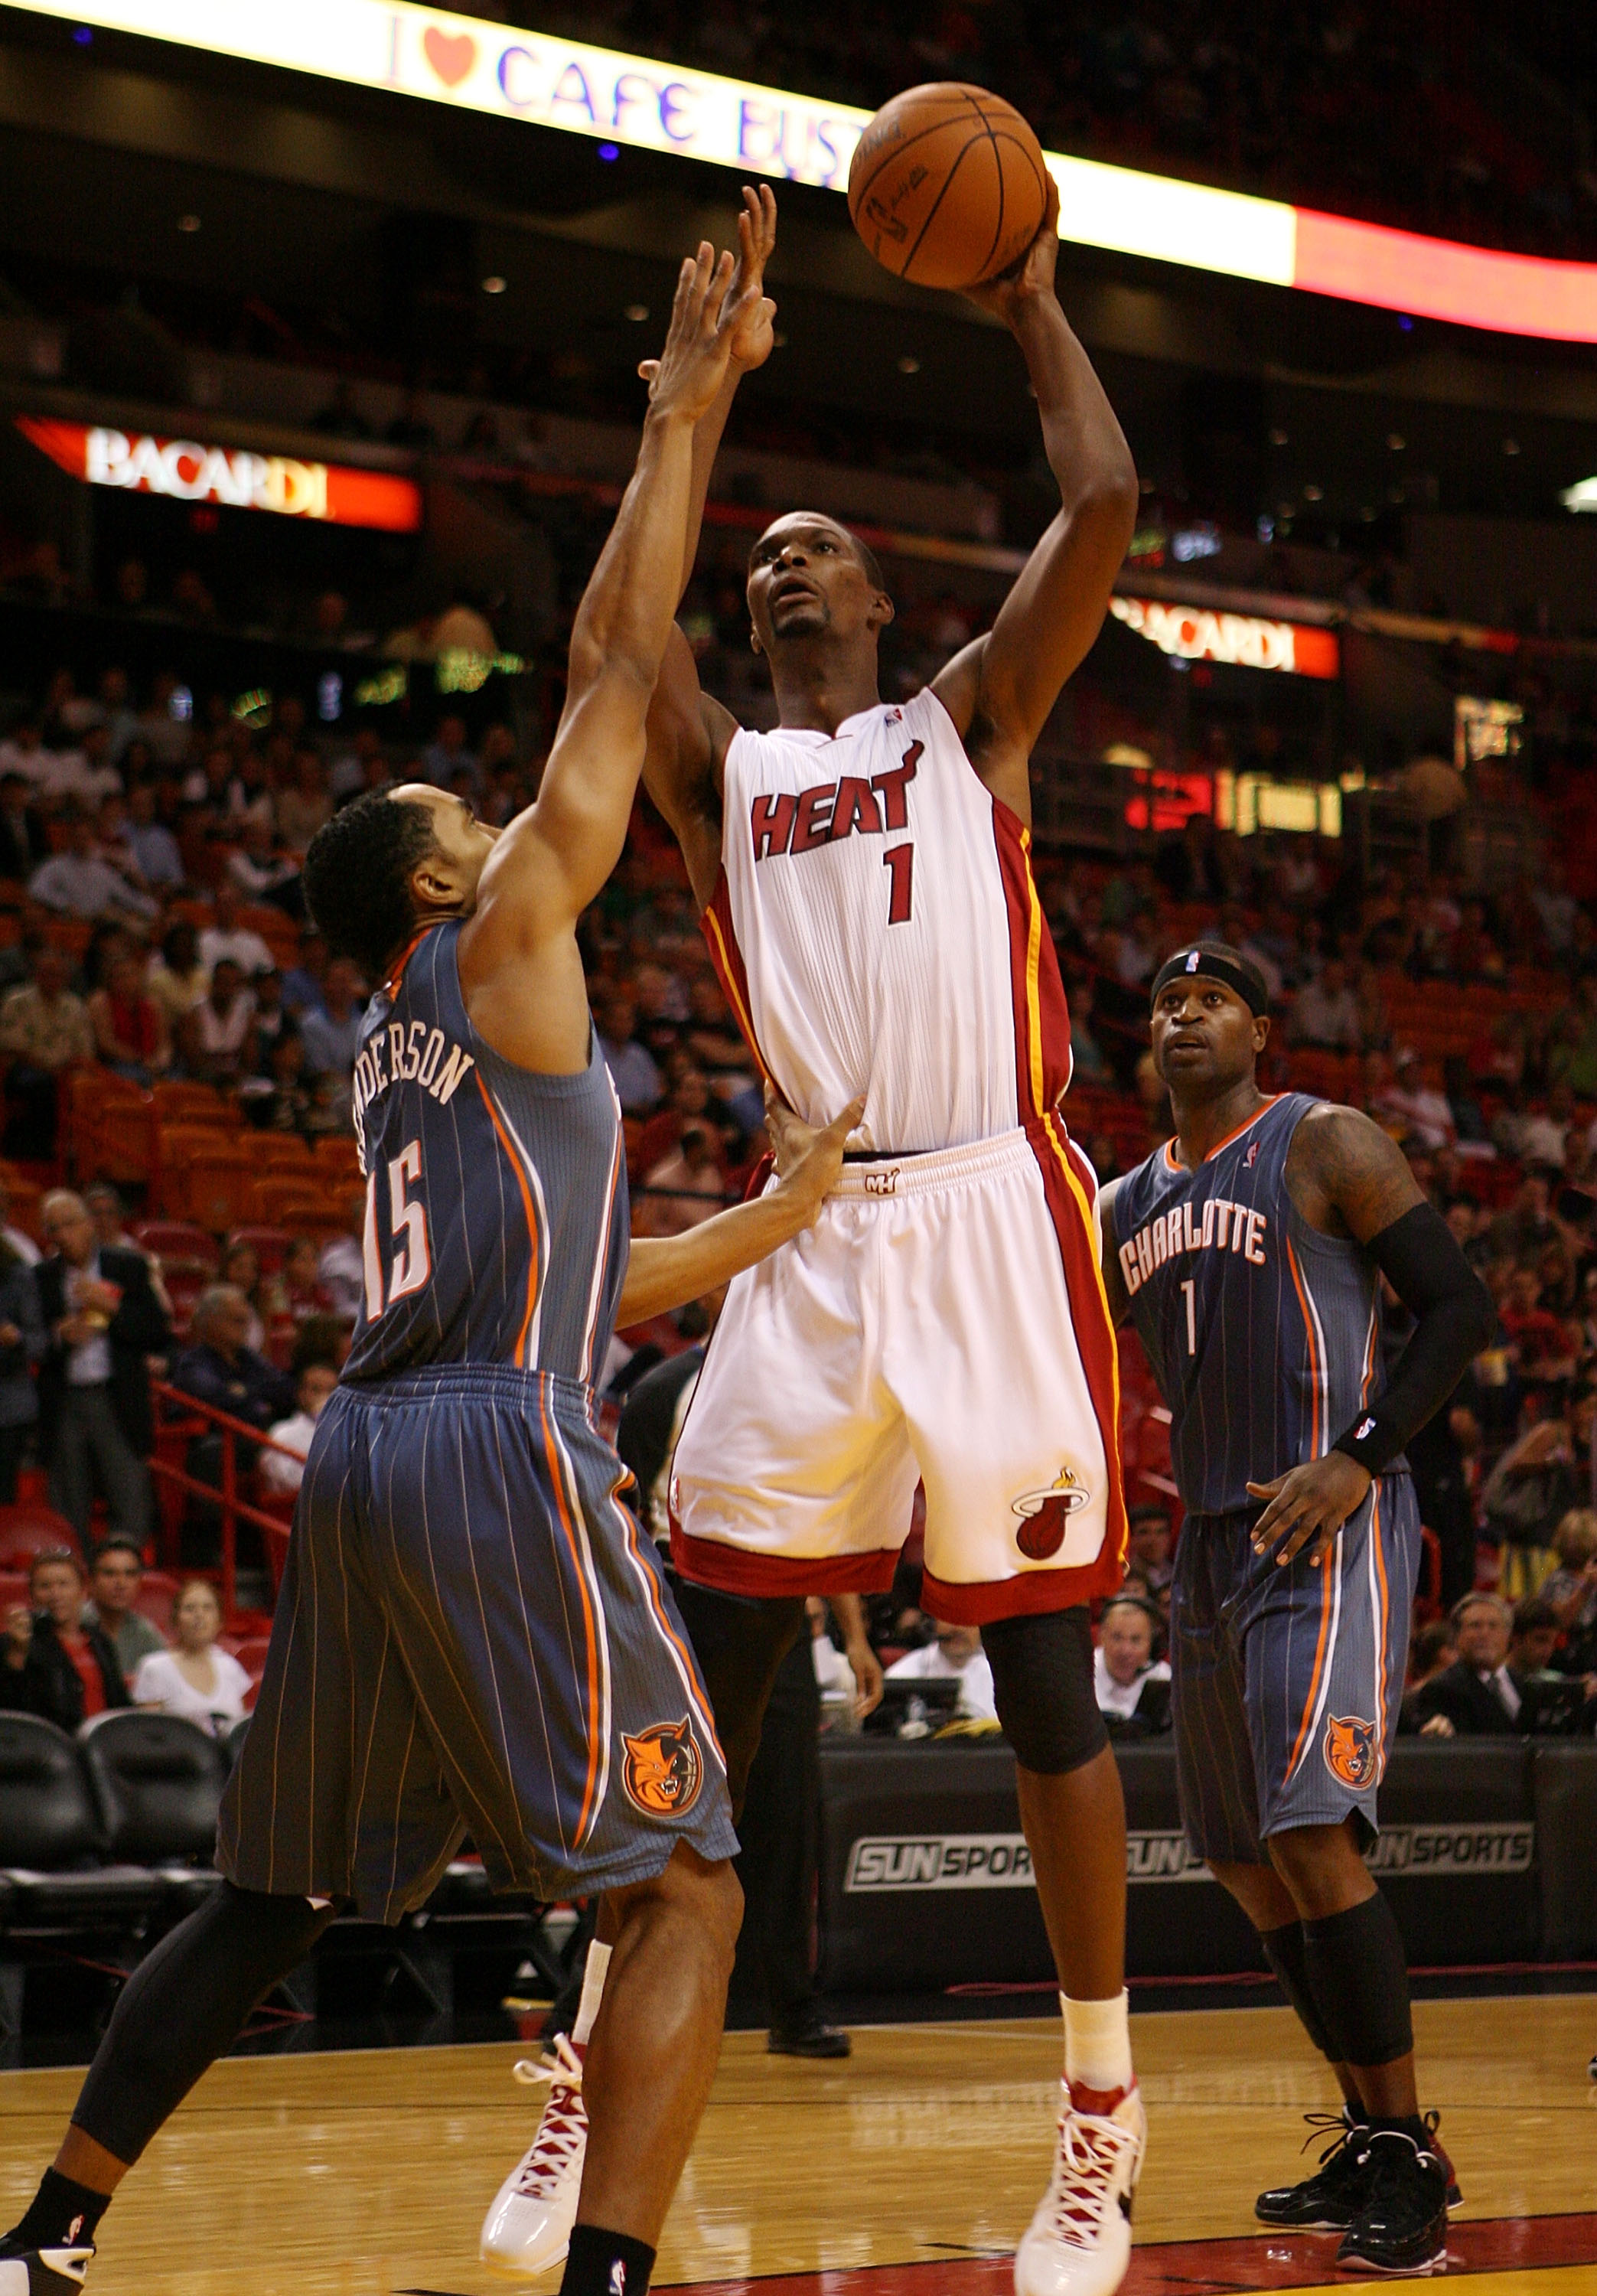 MIAMI - OCTOBER 18:  Center Chris Bosh #1 of the Miami Heat shoots over Guard Gerald Henderson #15  of the Charlotte Bobcats on October 18, 2010 at the American Airlines arena in Miami, Florida.  NOTE TO USER: User expressly acknowledges and agrees that,